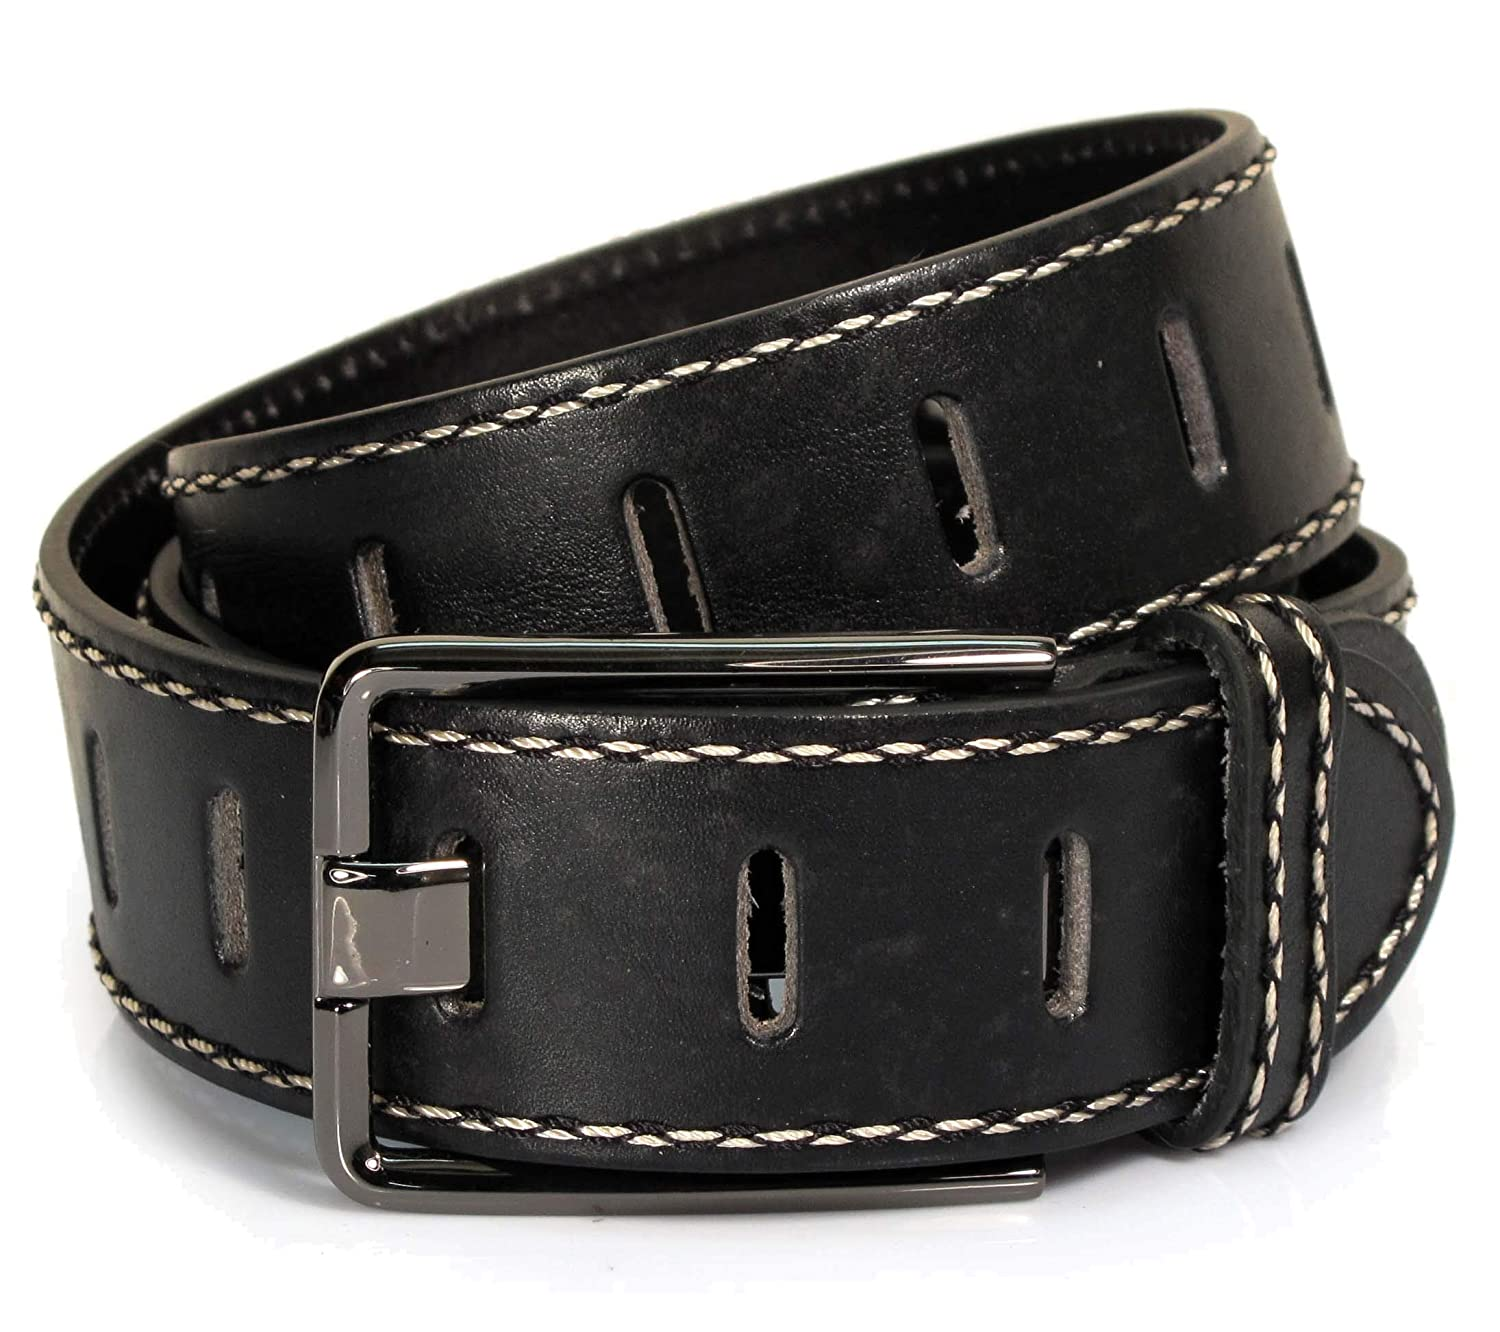 Mens Real Genuine Leather Black Belt 1.5 Wide S-L Thick Long Casual Jeans CM5